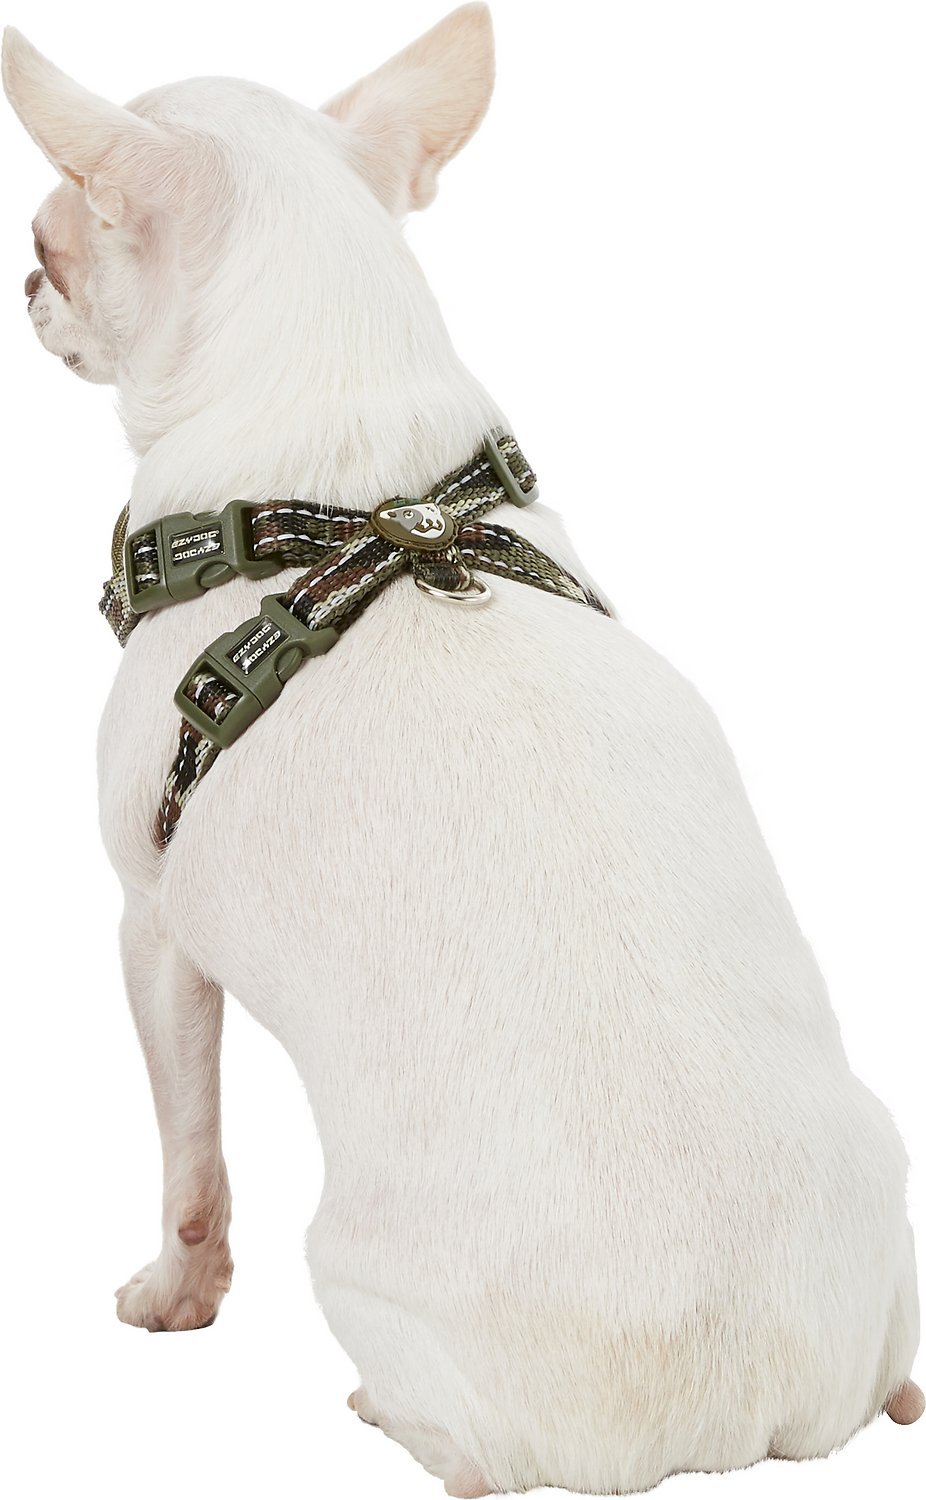 Ezydog Chest Plate Dog Harness Green Camo X Small